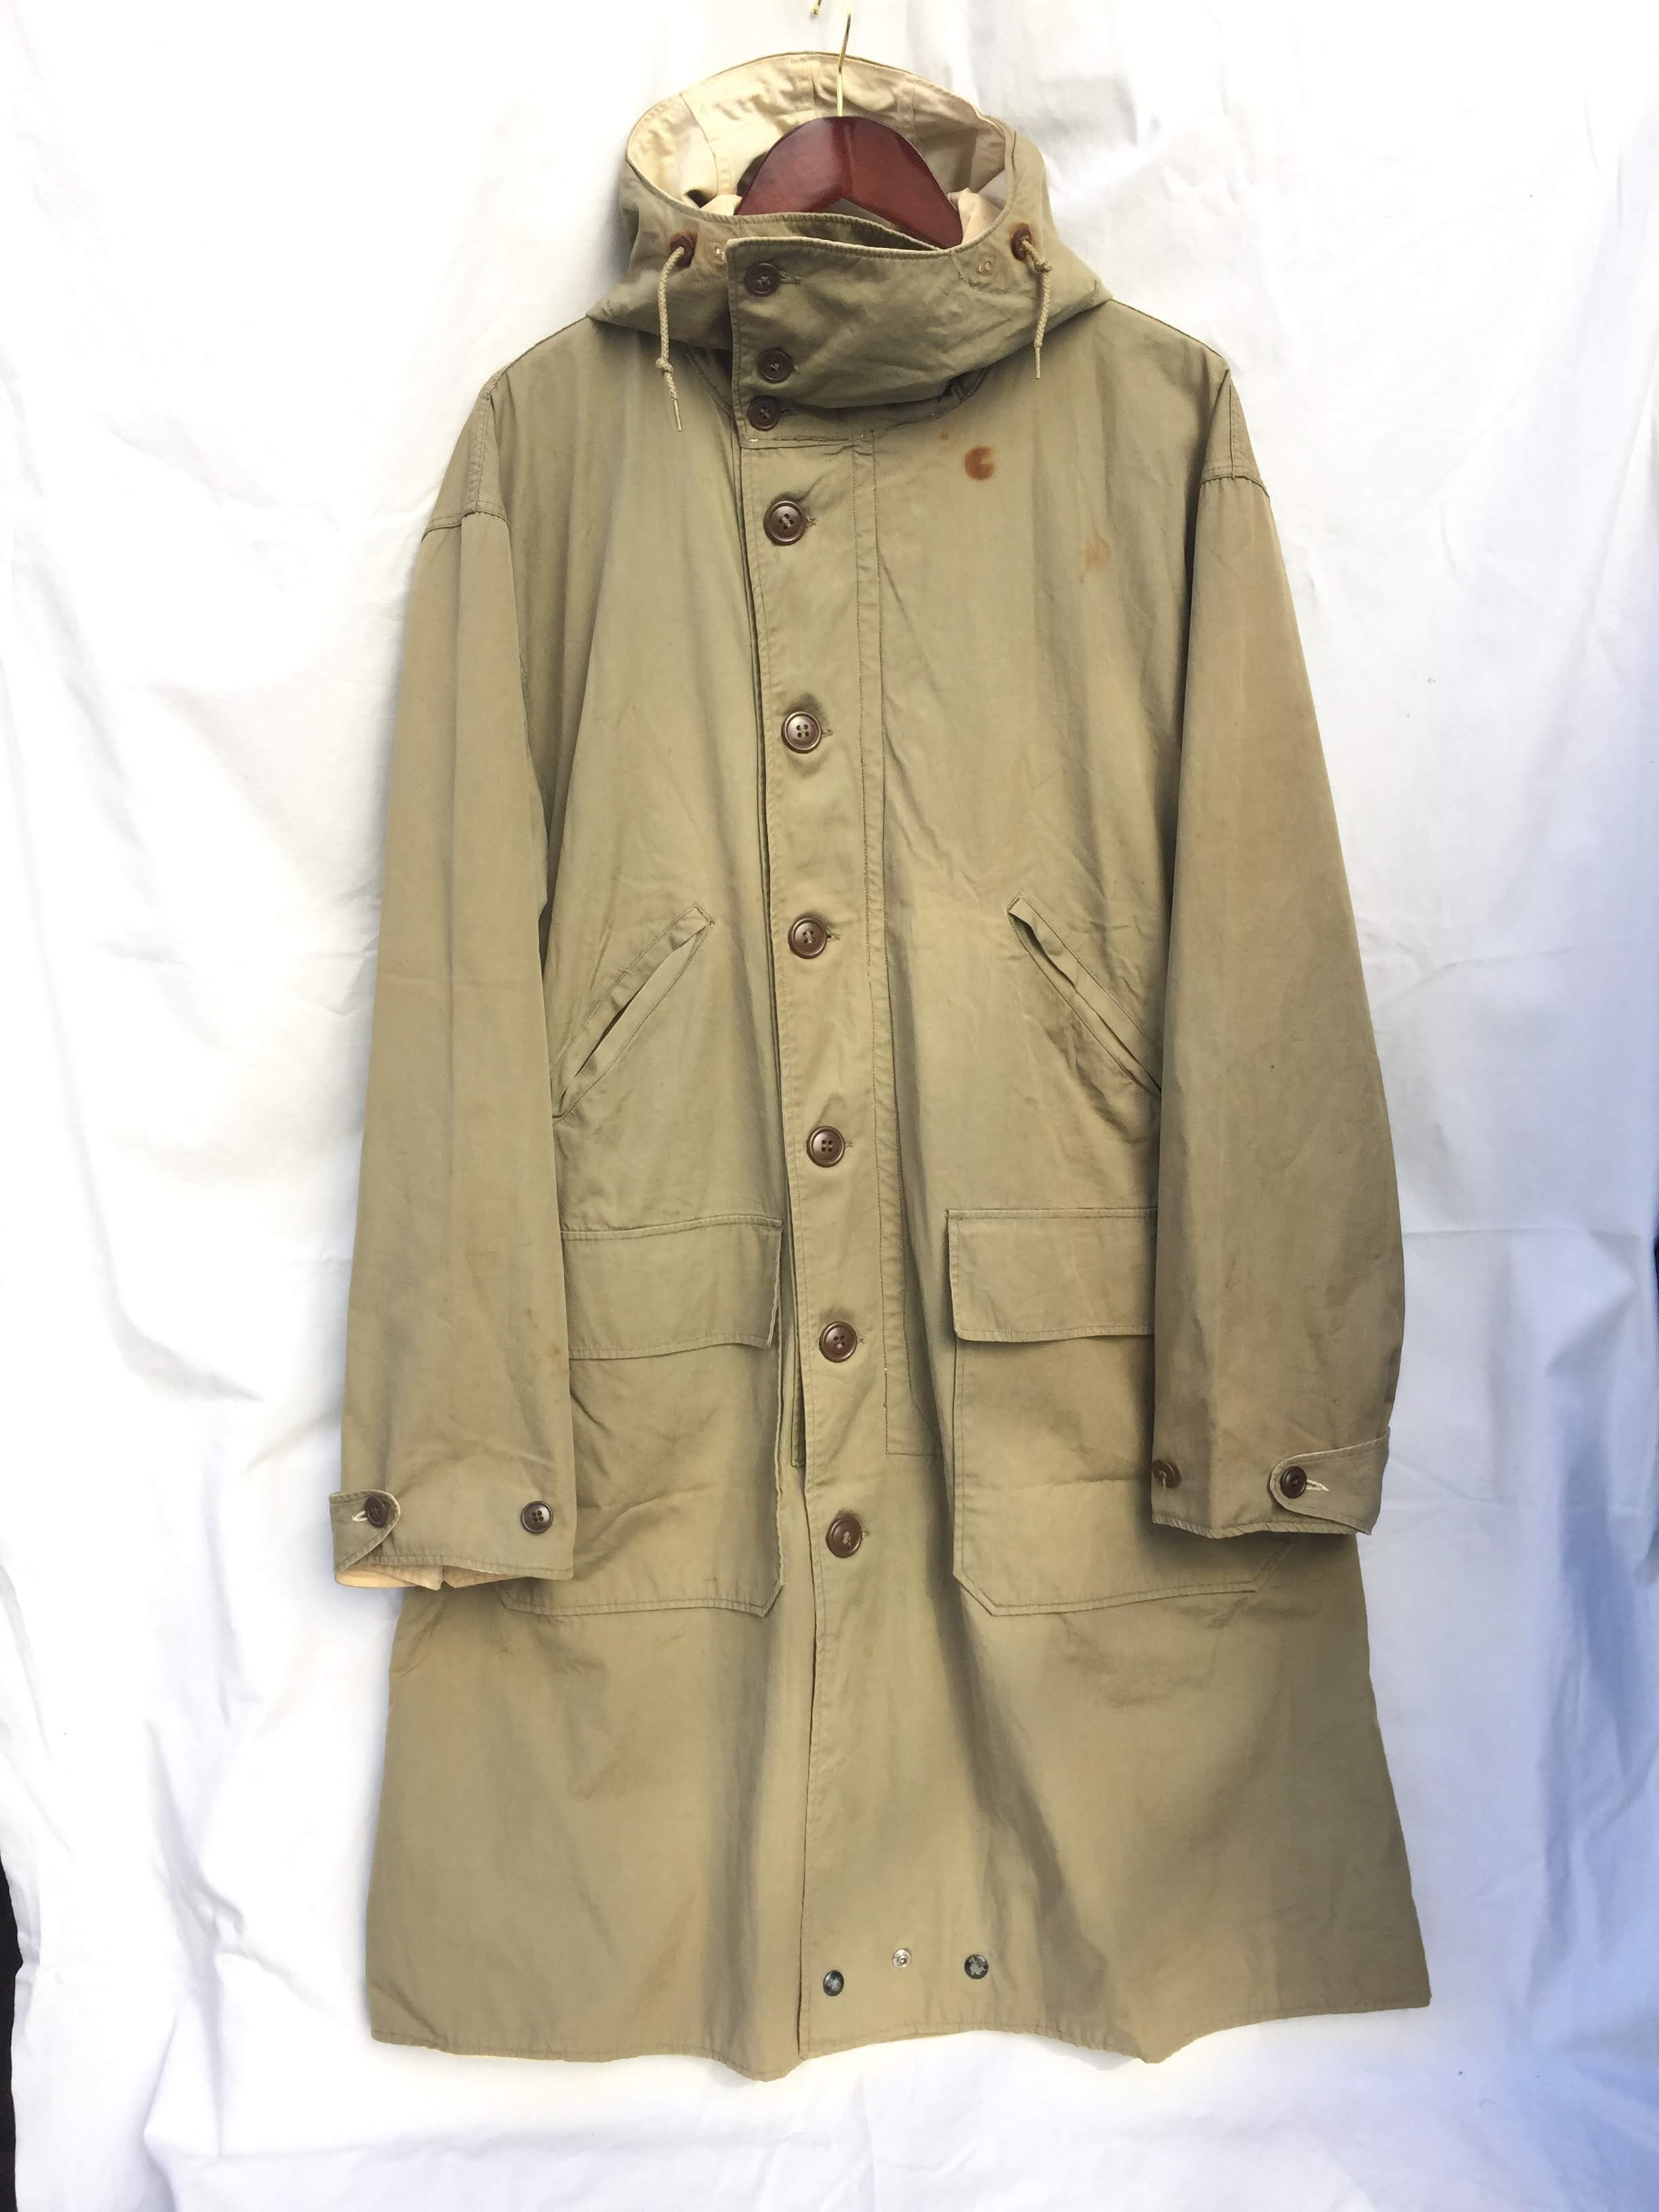 40's Vintage US Army Mountain Troops Reversible Parka